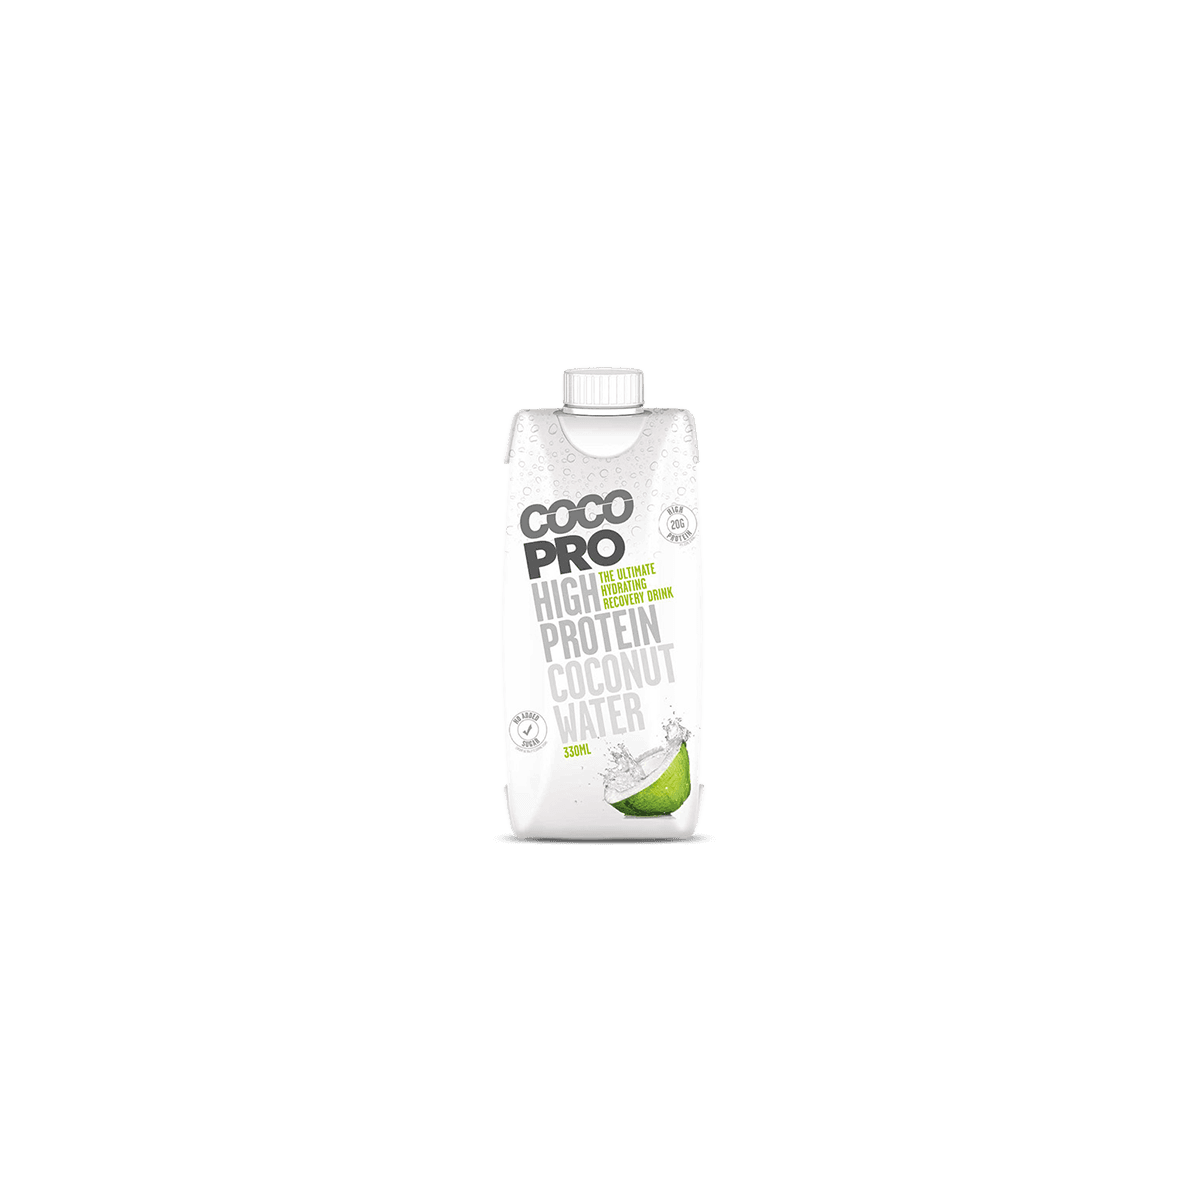 HIGH PROTEIN COCONUT WATER (1x330ml)